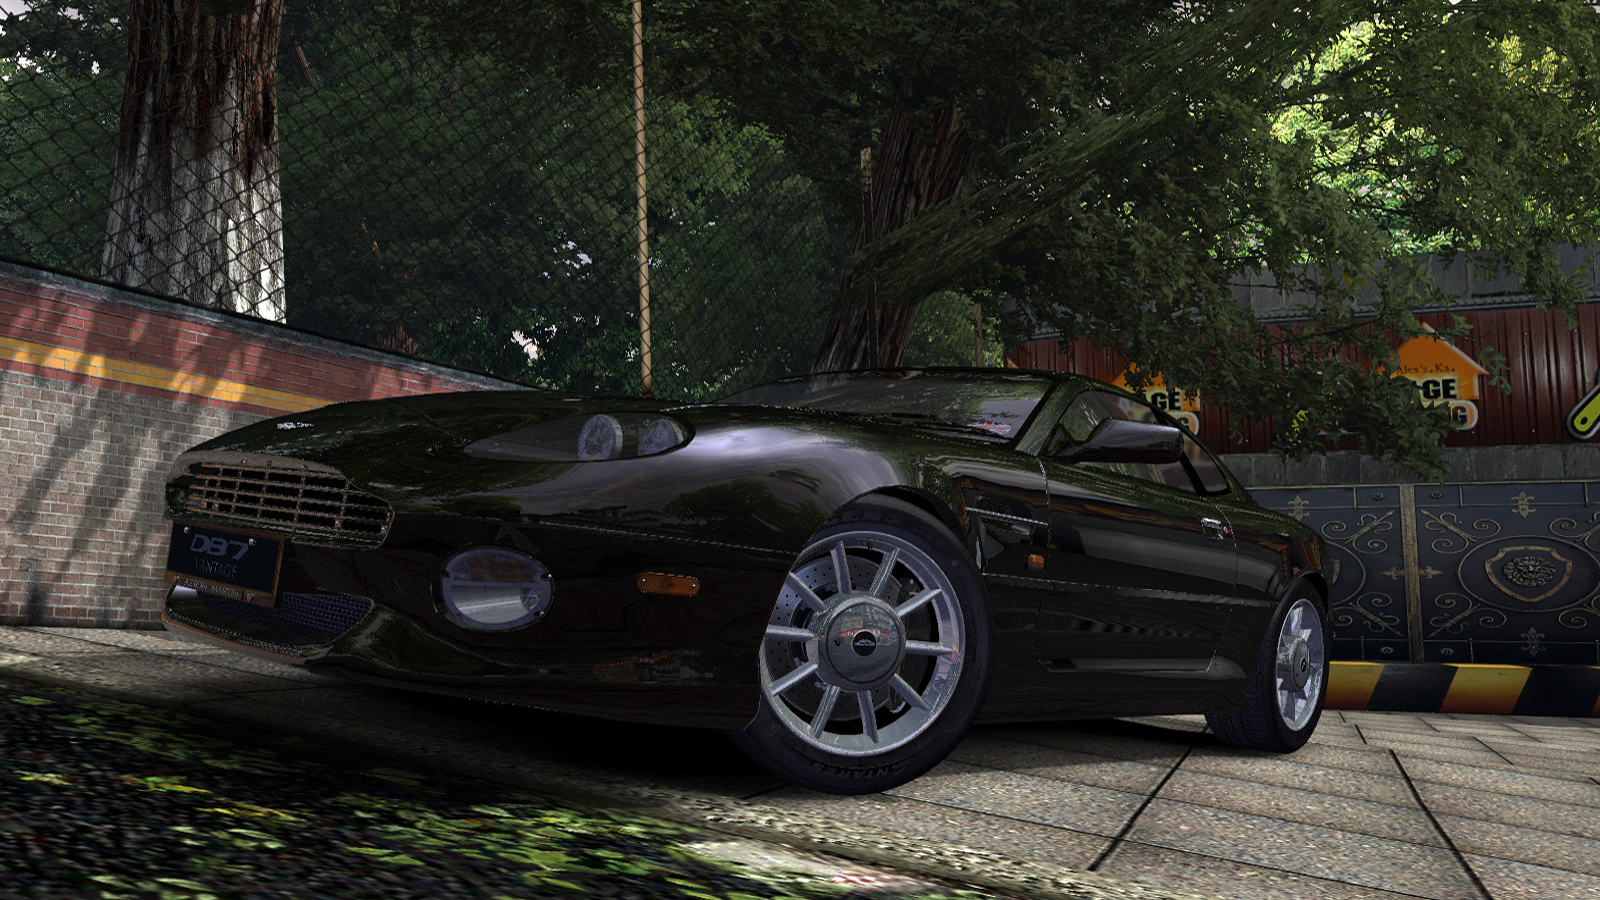 Speed 2020-01-12 19-41-48-916.jpg - Need for Speed: Most Wanted (2005) Aston Martin DB7 Vantage, Автомобиль